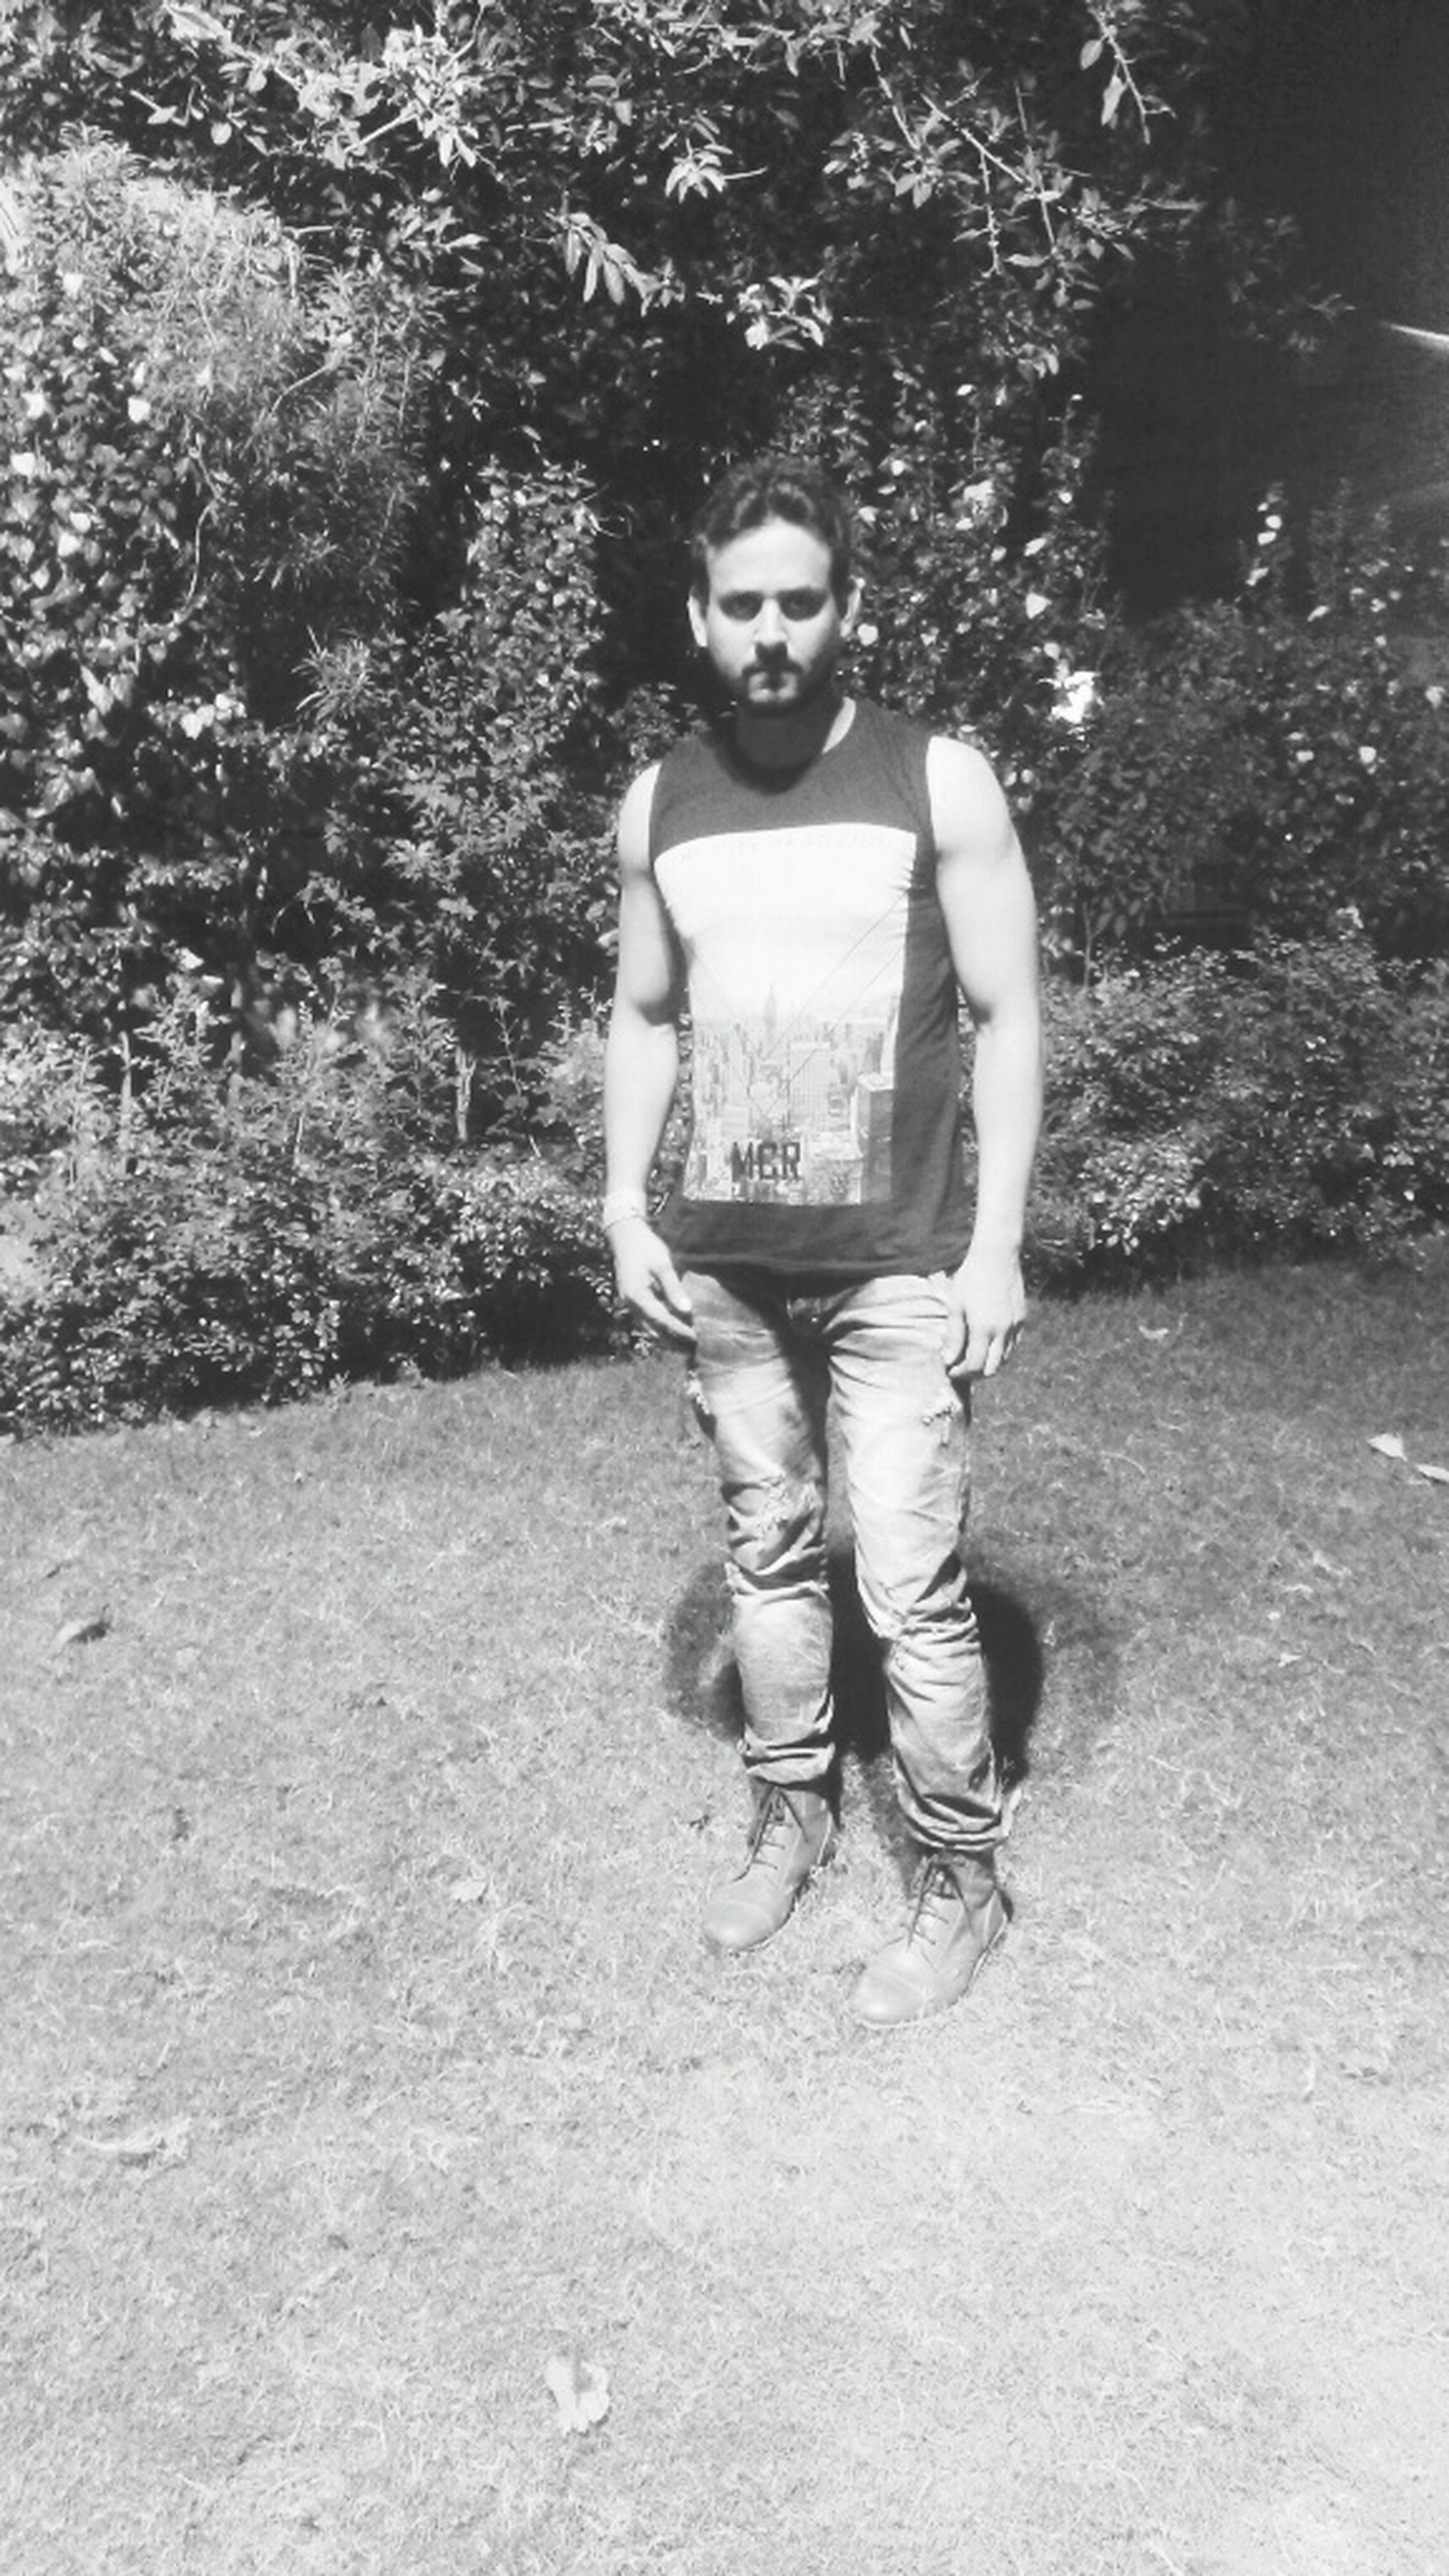 full length, childhood, person, lifestyles, casual clothing, leisure activity, elementary age, girls, boys, innocence, front view, tree, cute, park - man made space, standing, looking at camera, smiling, portrait